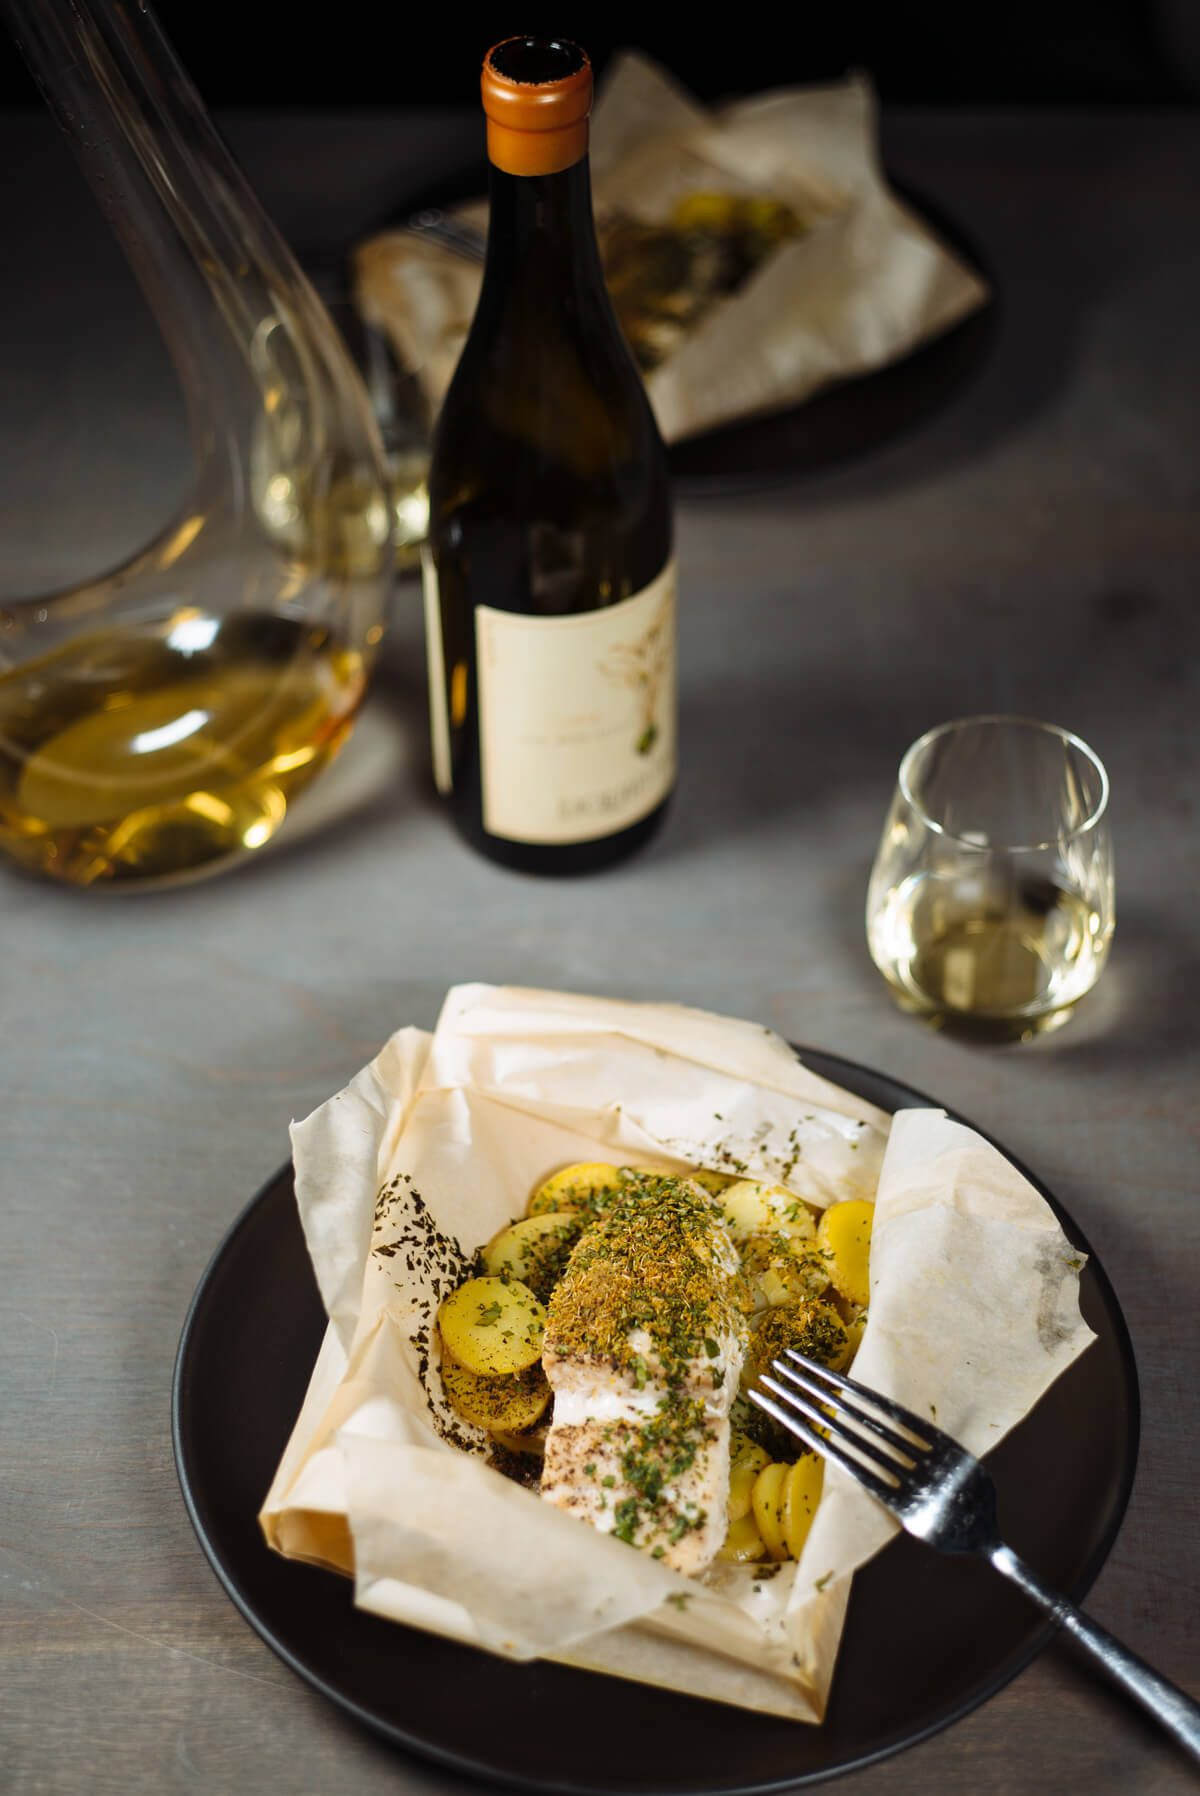 The Taste SF makes halibut with fennel pollen and potatoes to pair with Liquid Farm's wine